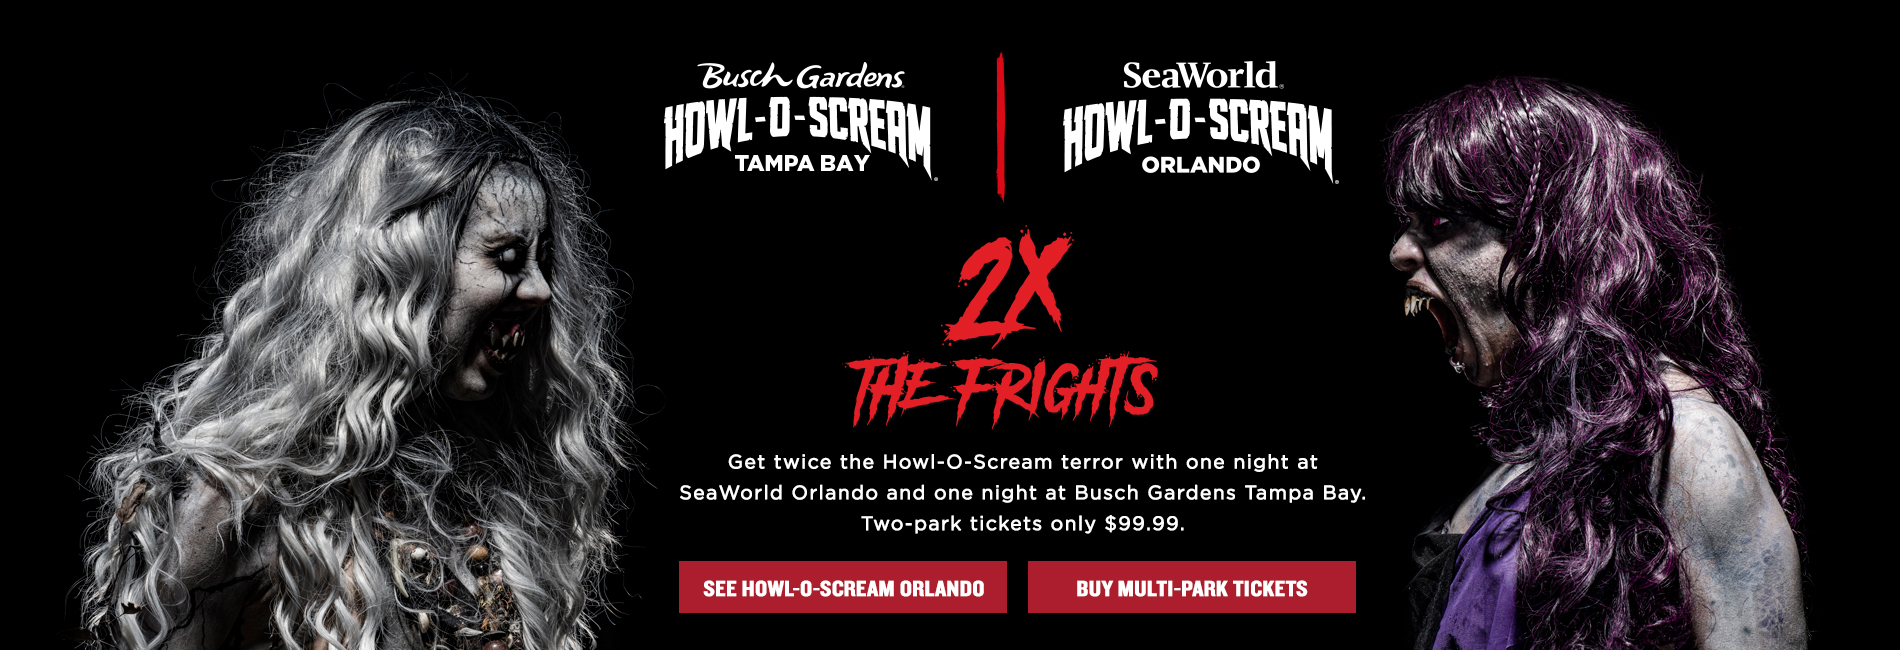 Twice the frights with Busch Gardens and SeaWorld Howl-O-Scream tickets.